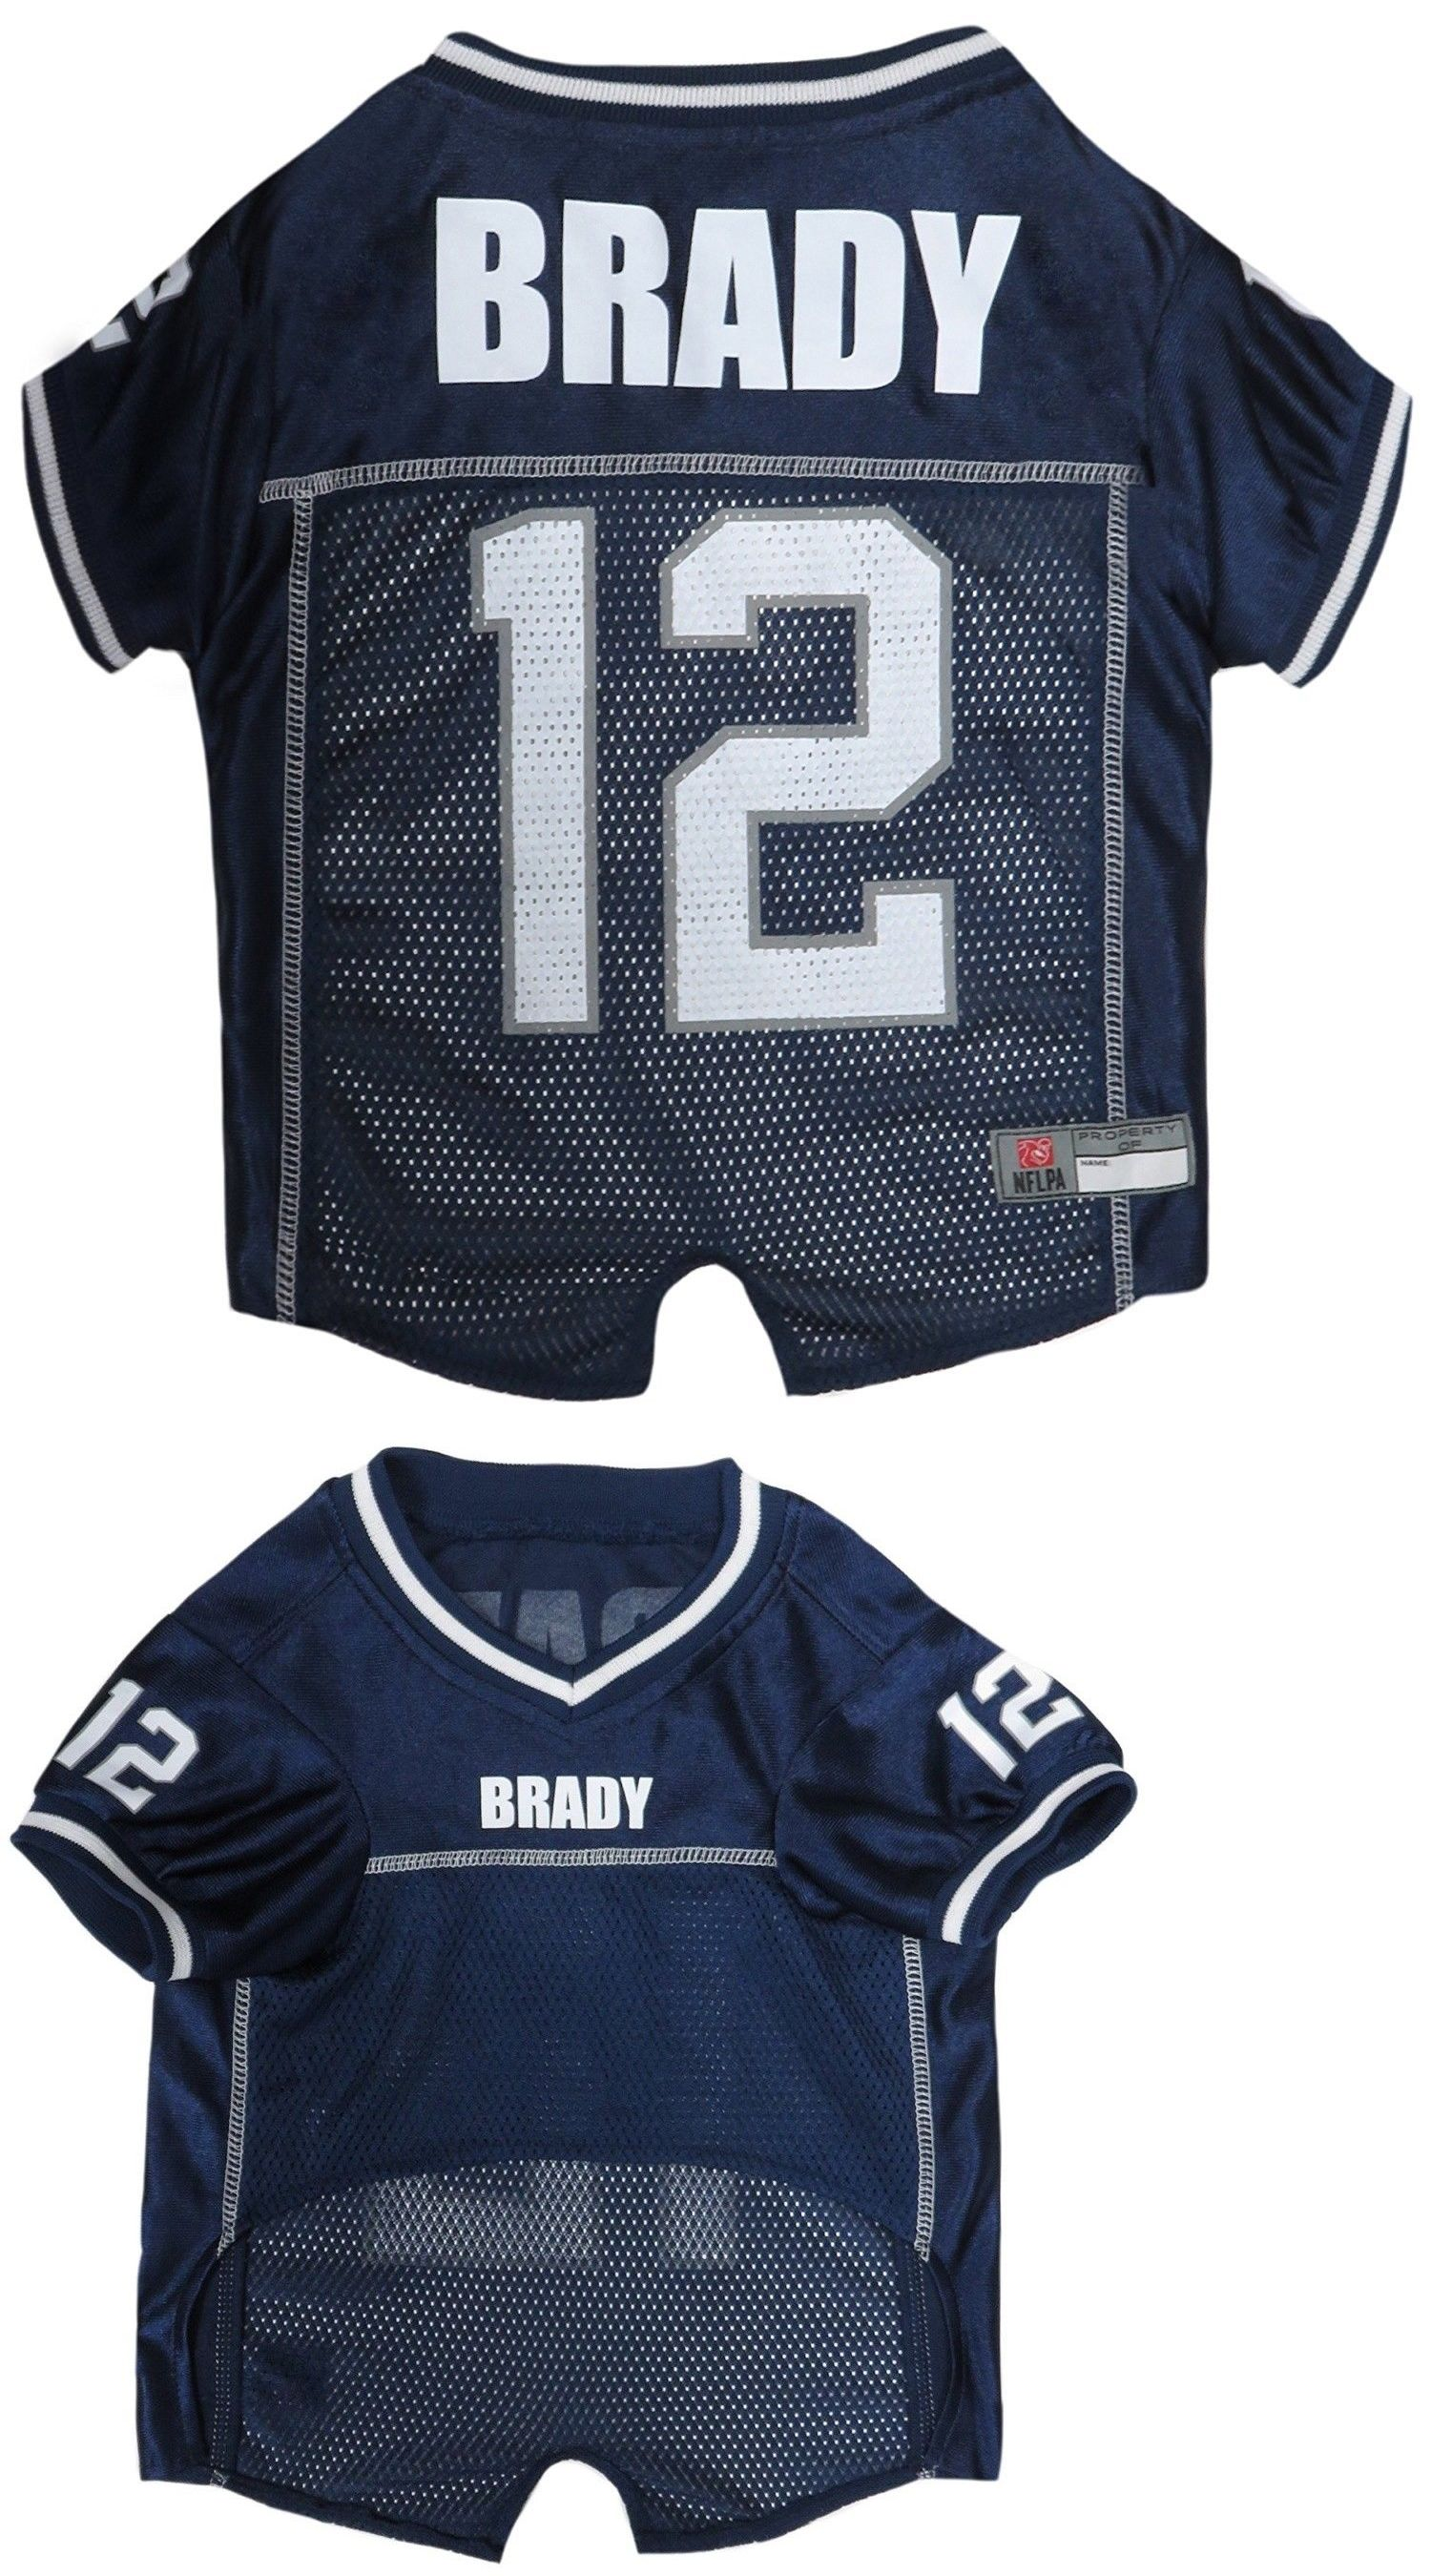 size 40 63039 4efc5 Clothing and Shoes 177796: Tom Brady Dog Jersey #12 New ...